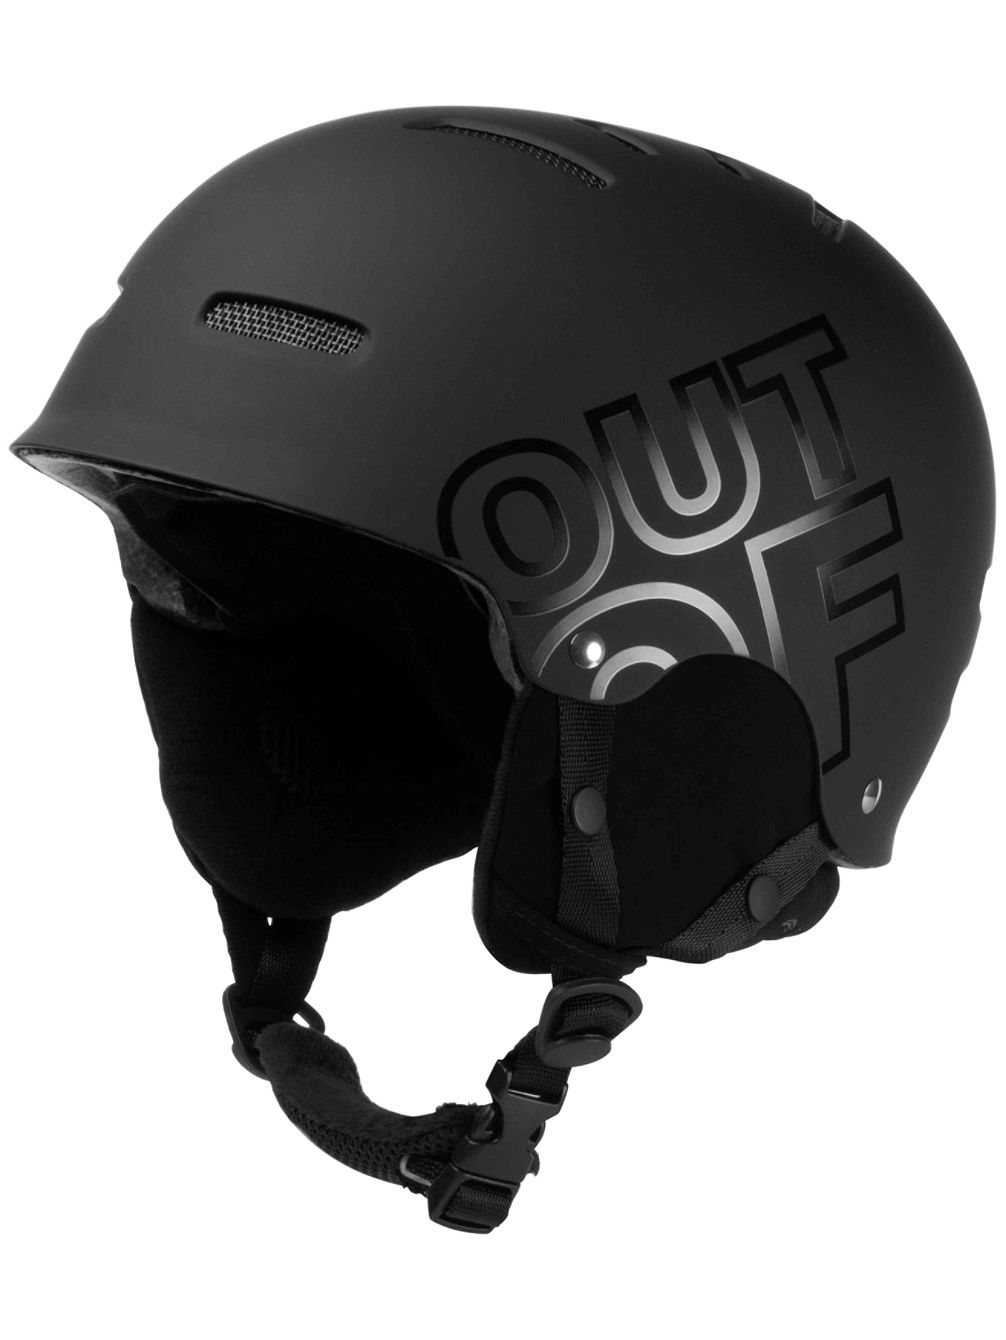 Wipeout Casque